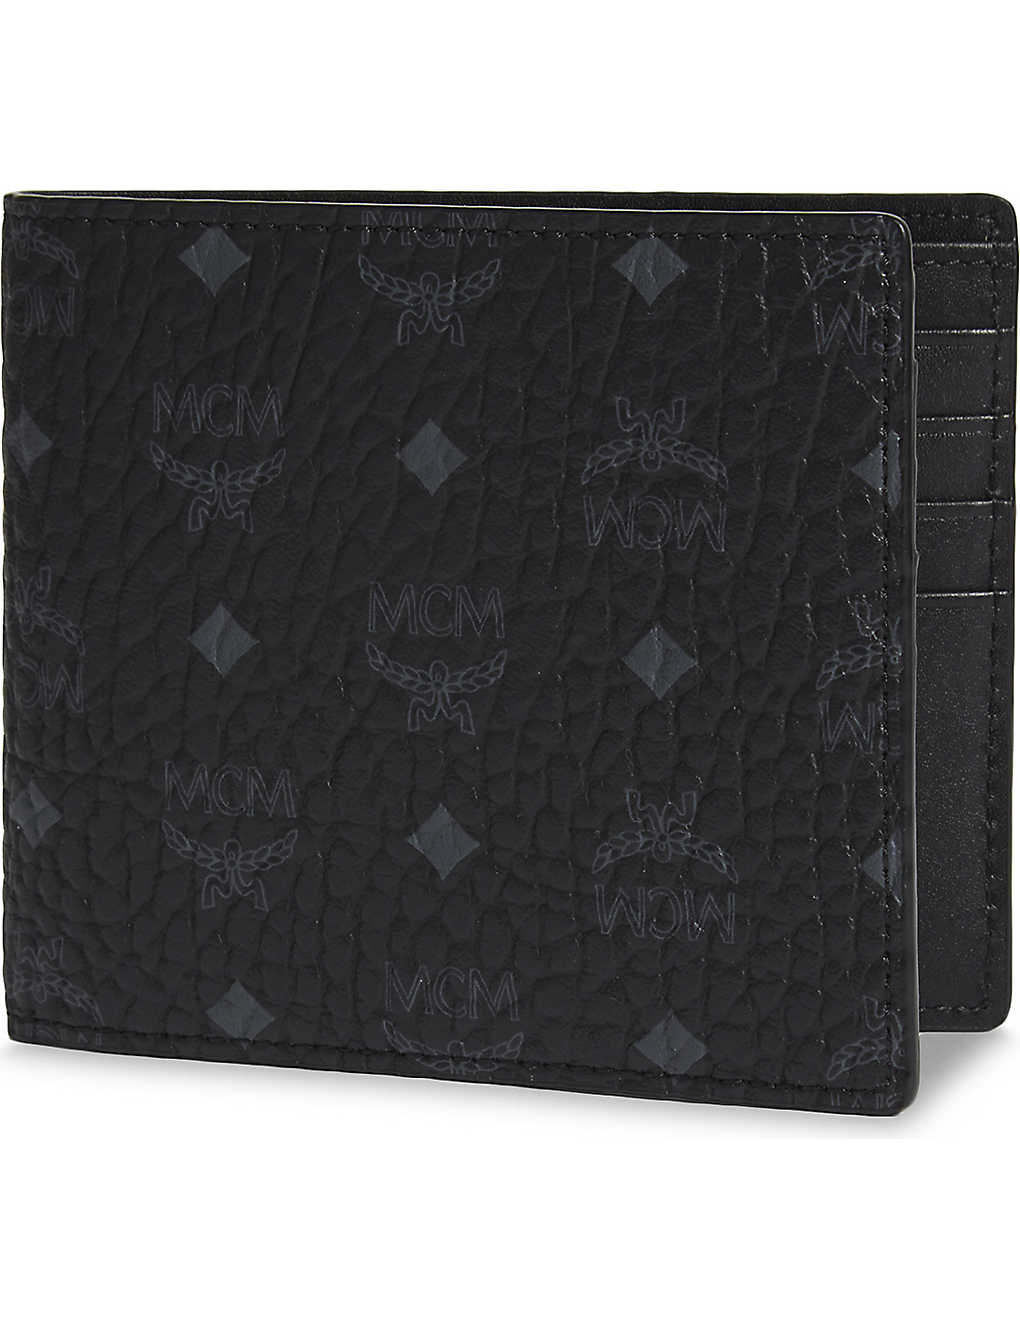 MCM: Visetos canvas billfold wallet